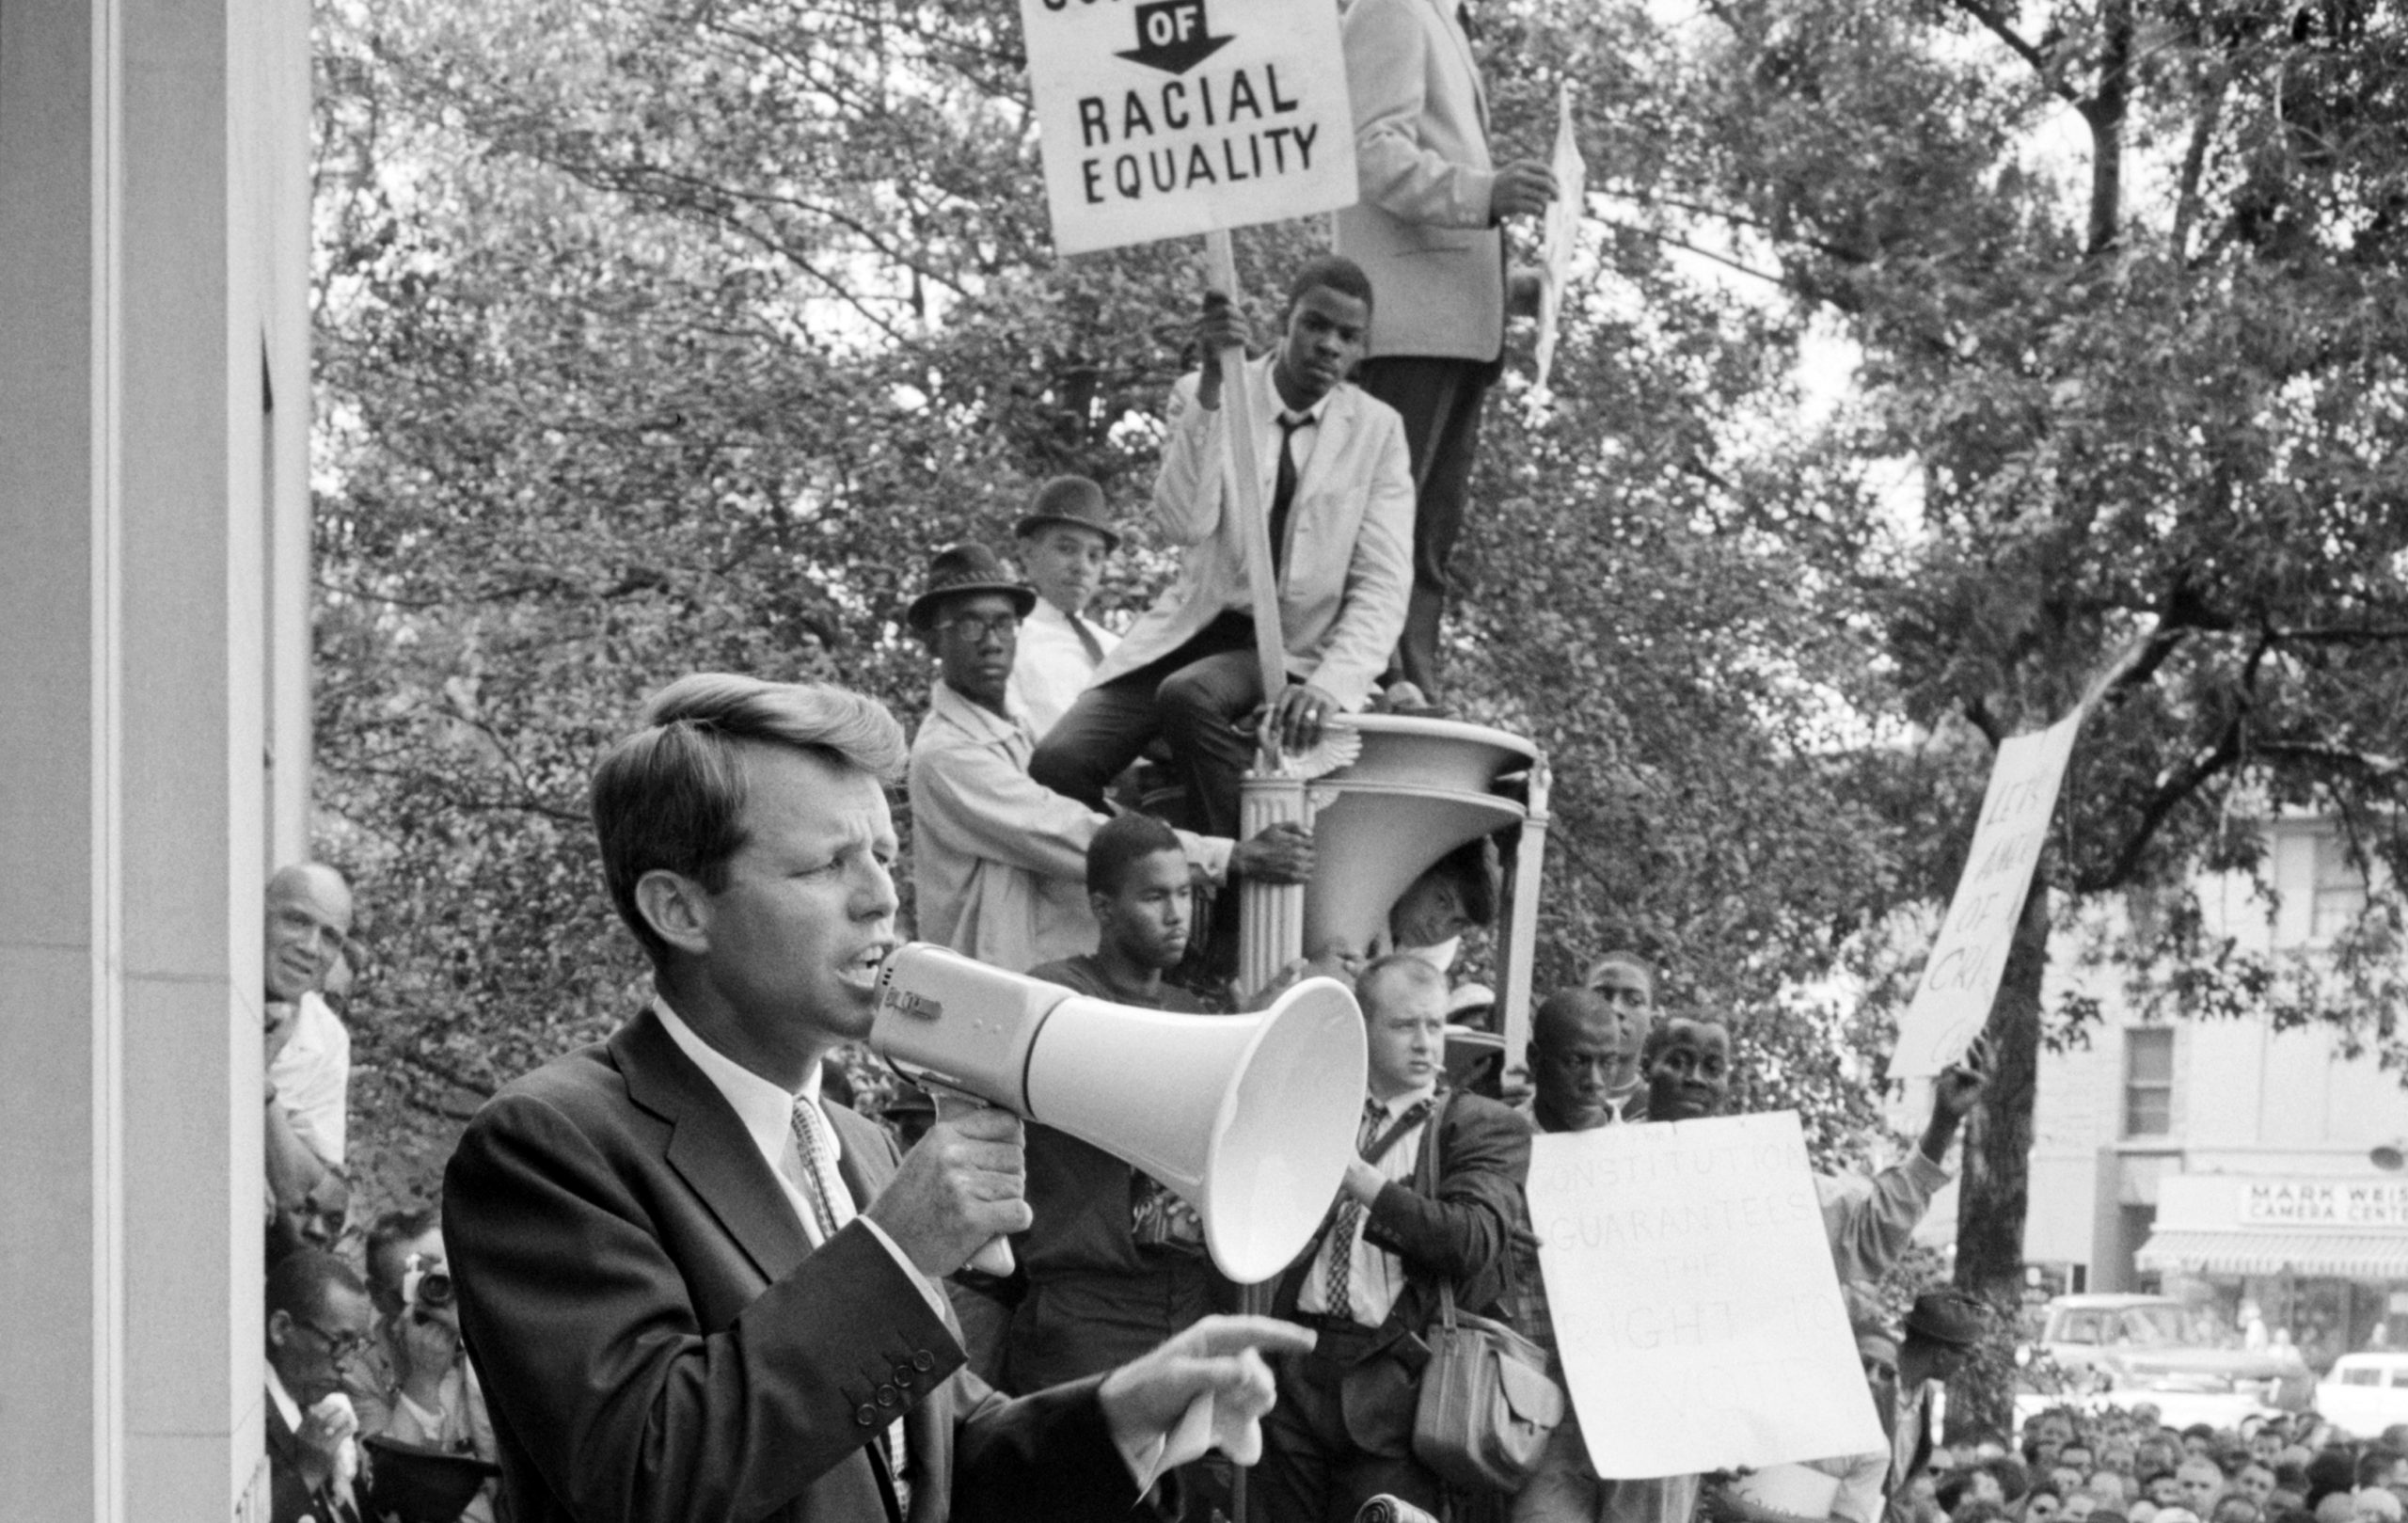 Robert F. Kennedy with megaphone